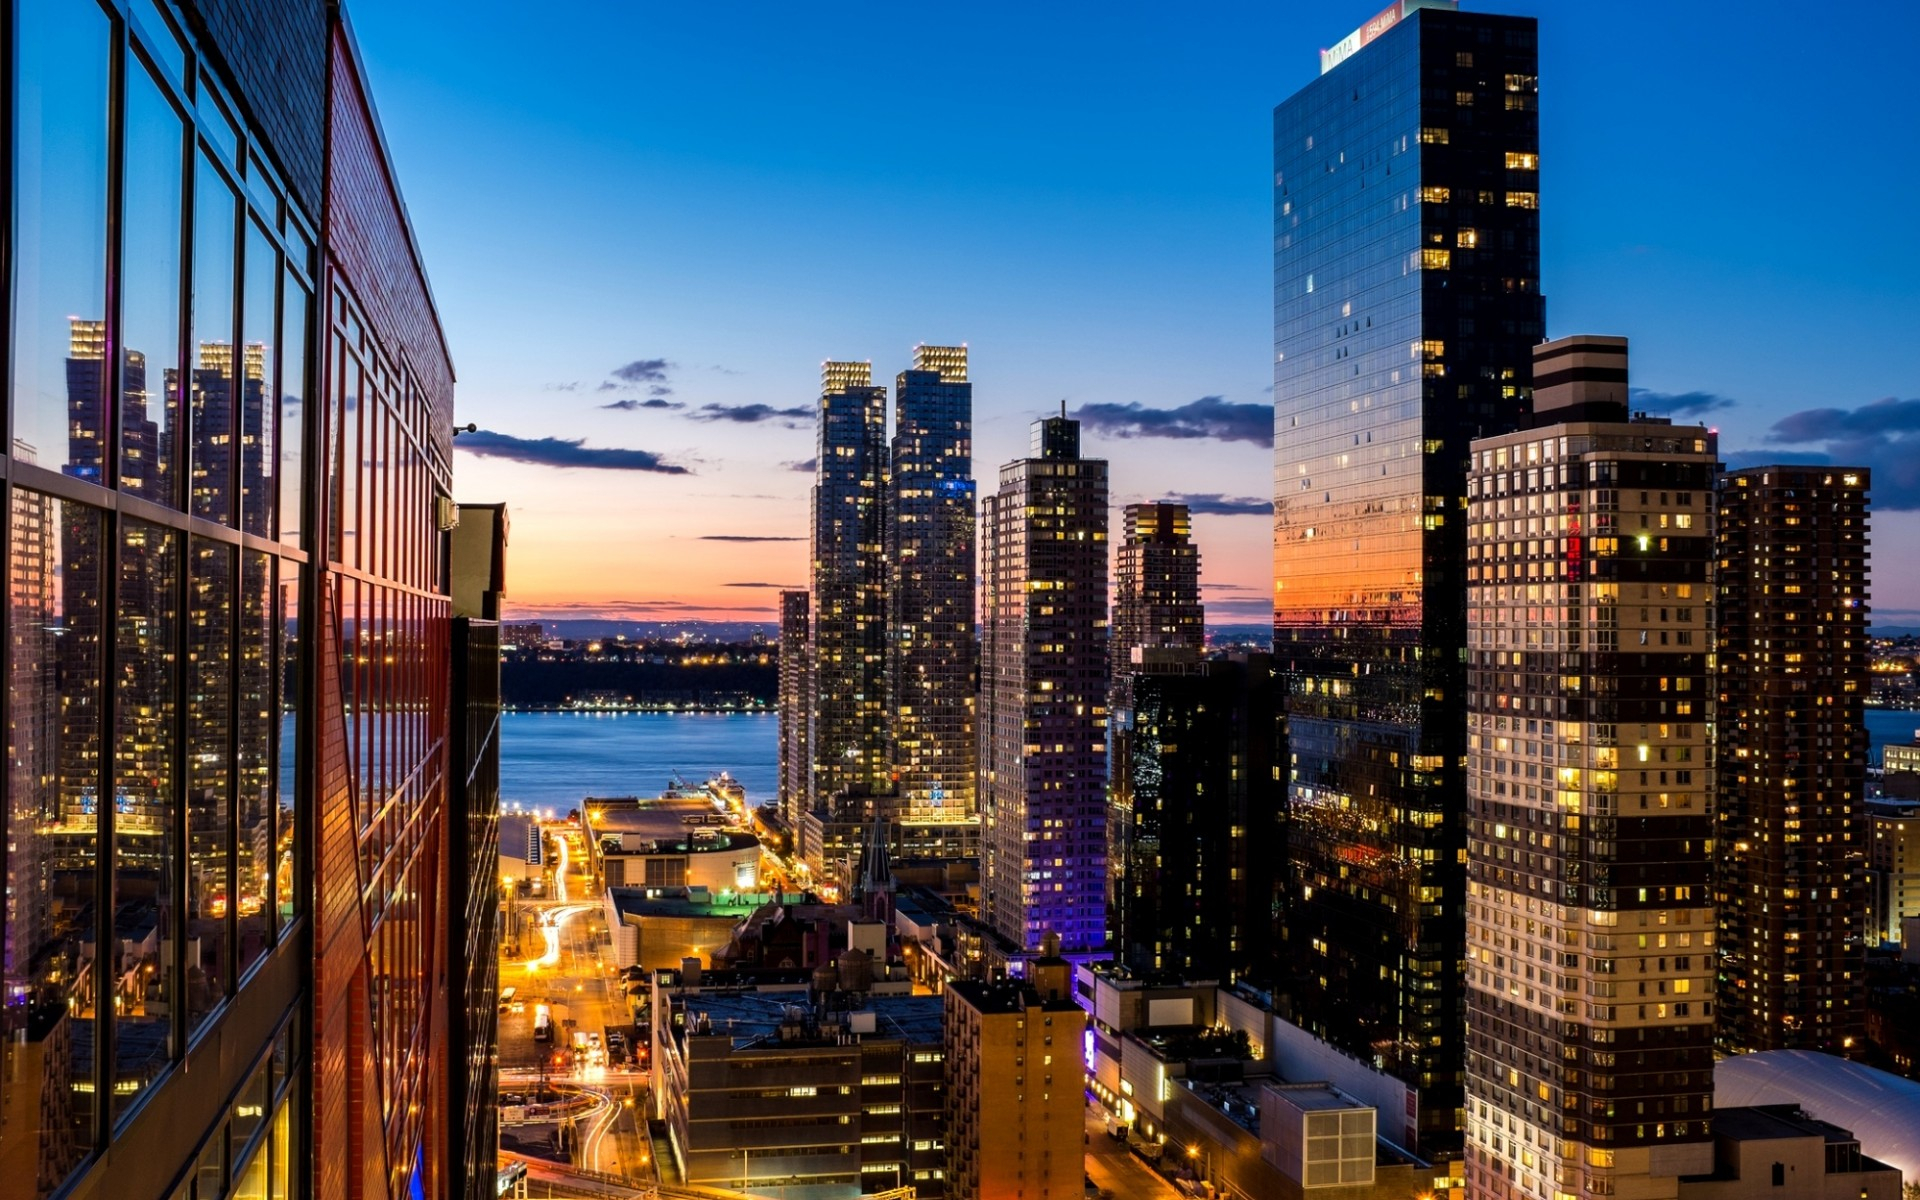 """Download the following Stunning New York Wallpaper 1210 by clicking the button positioned underneath the """"Download Wallpaper"""" section."""